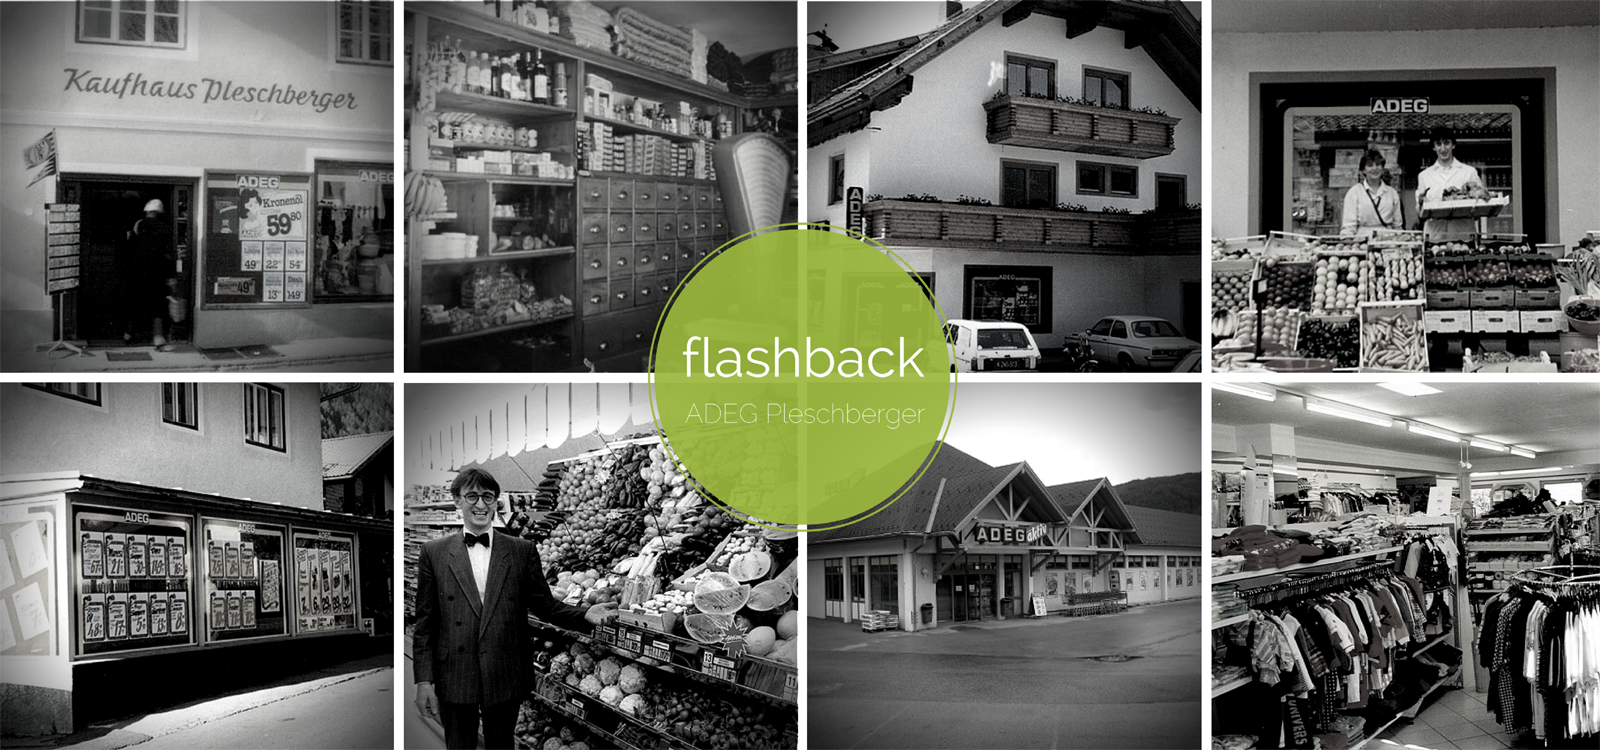 adeg-pleschberger-flashback-header-1